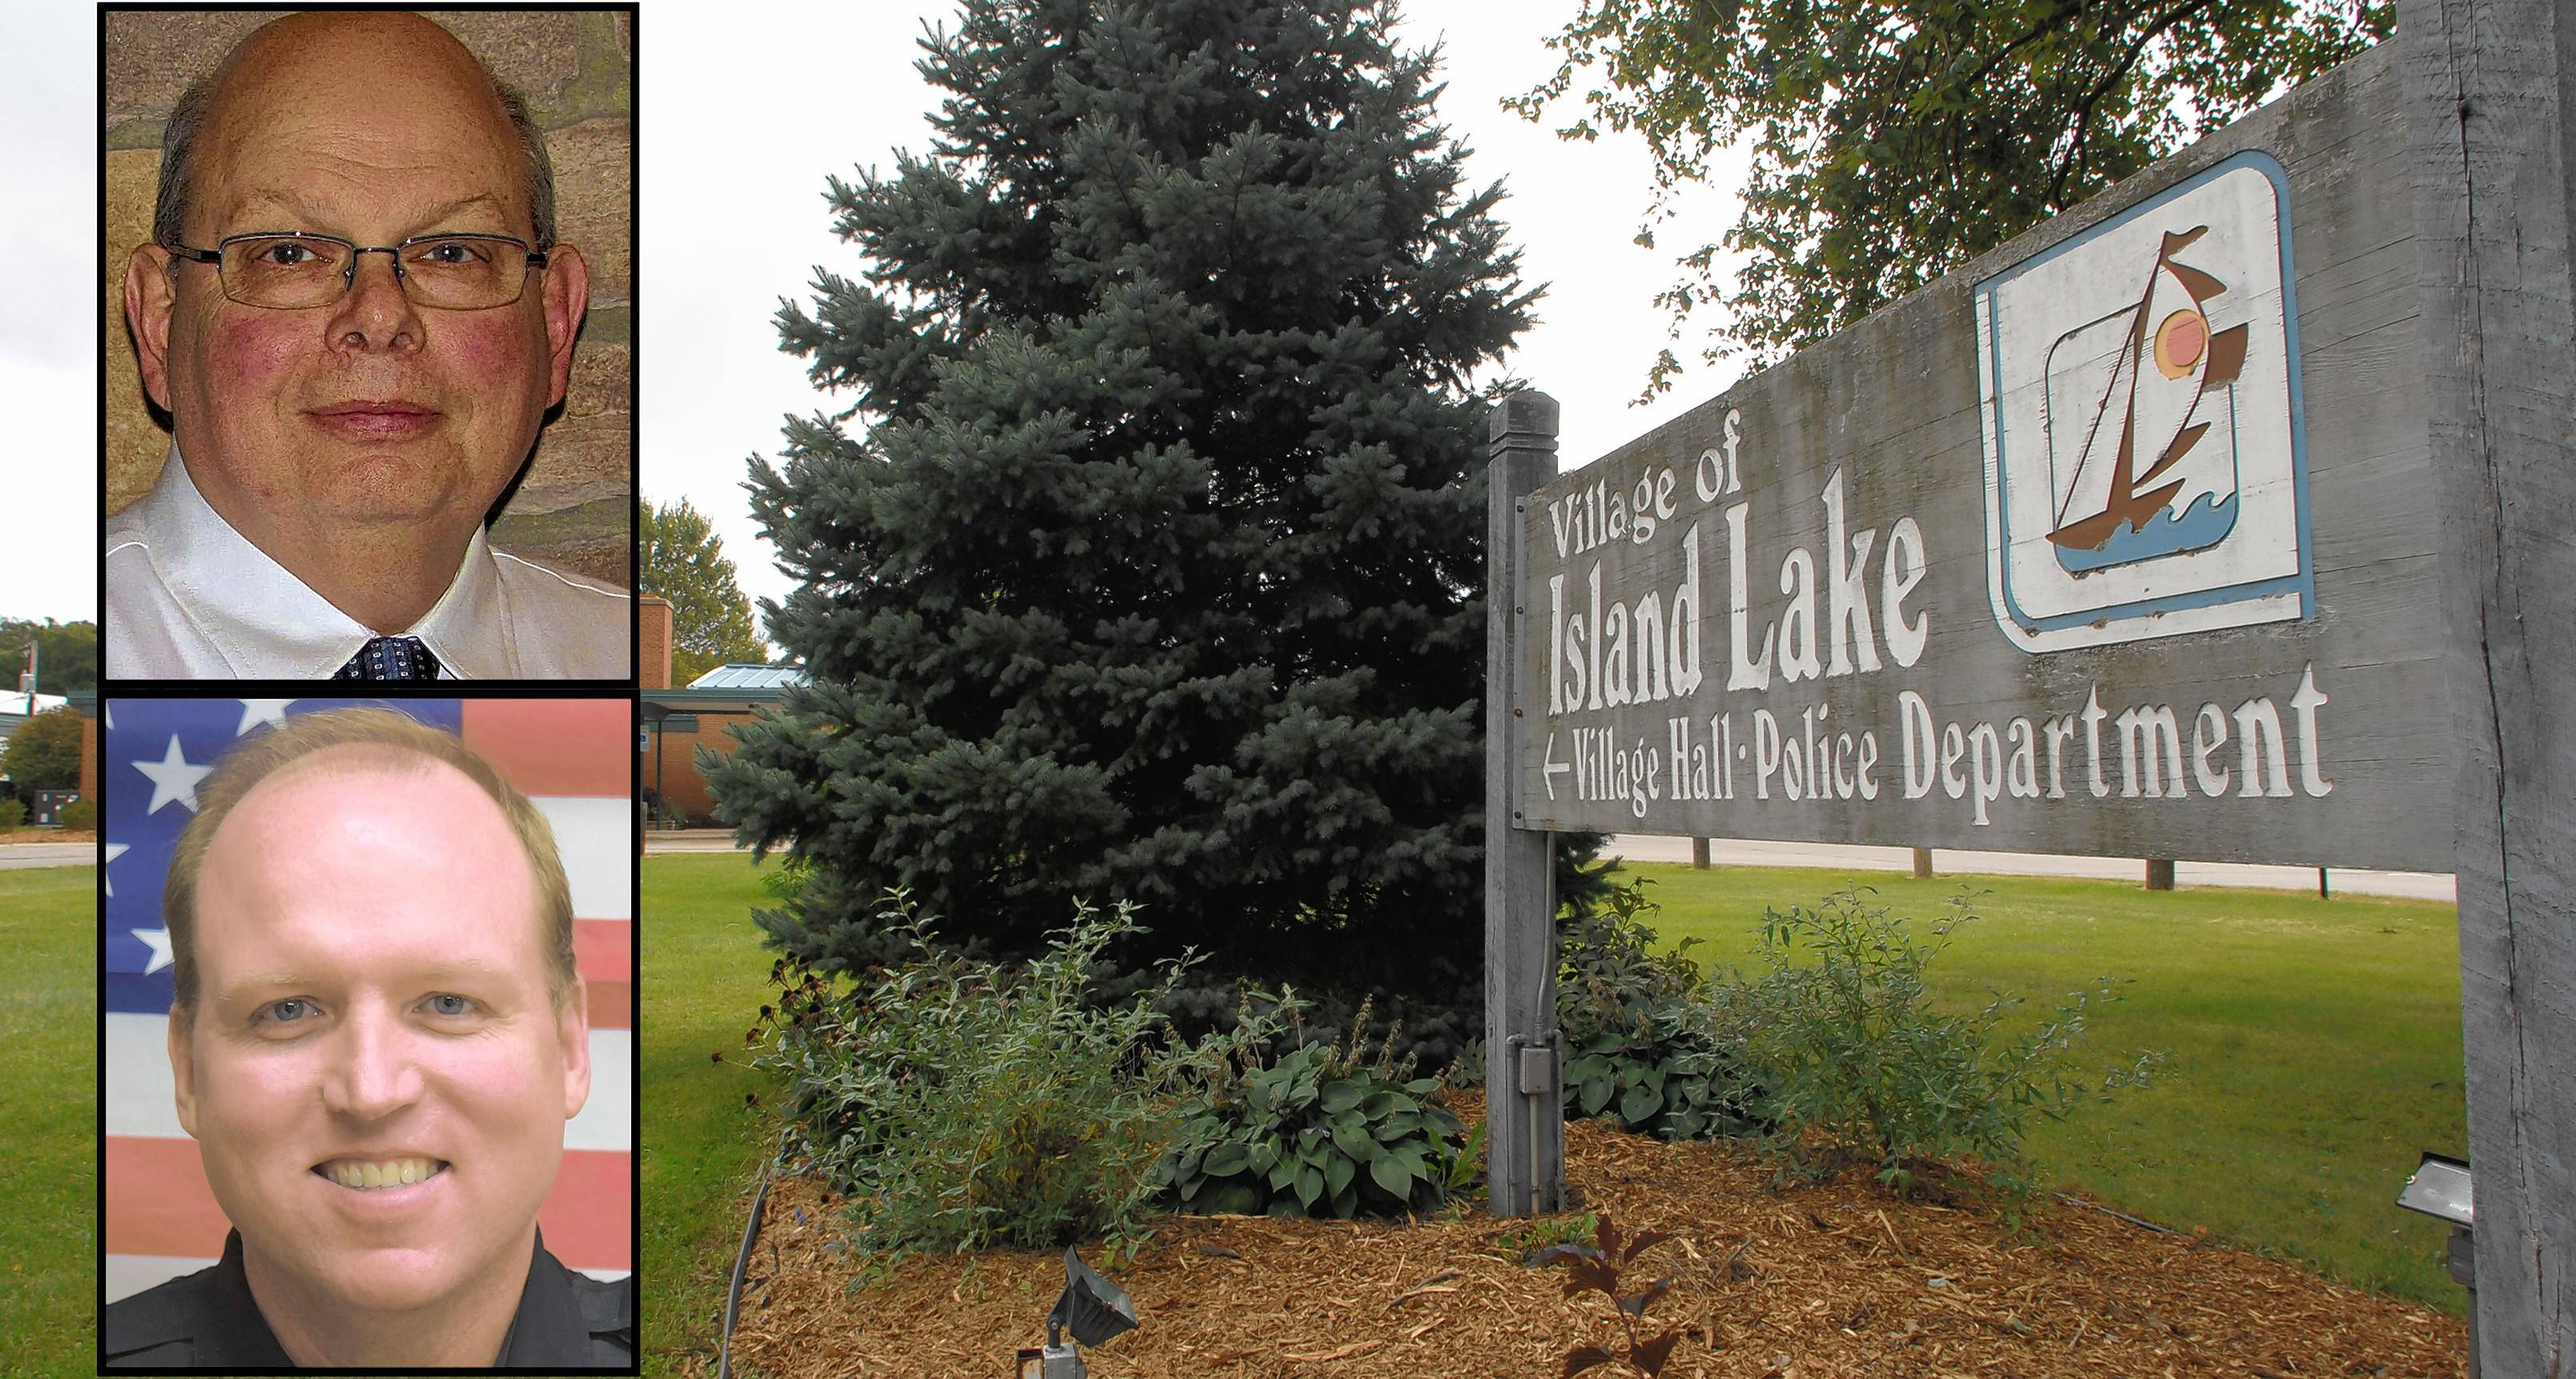 $85,901 and still counting: What investigation of Island Lake cops has cost the village